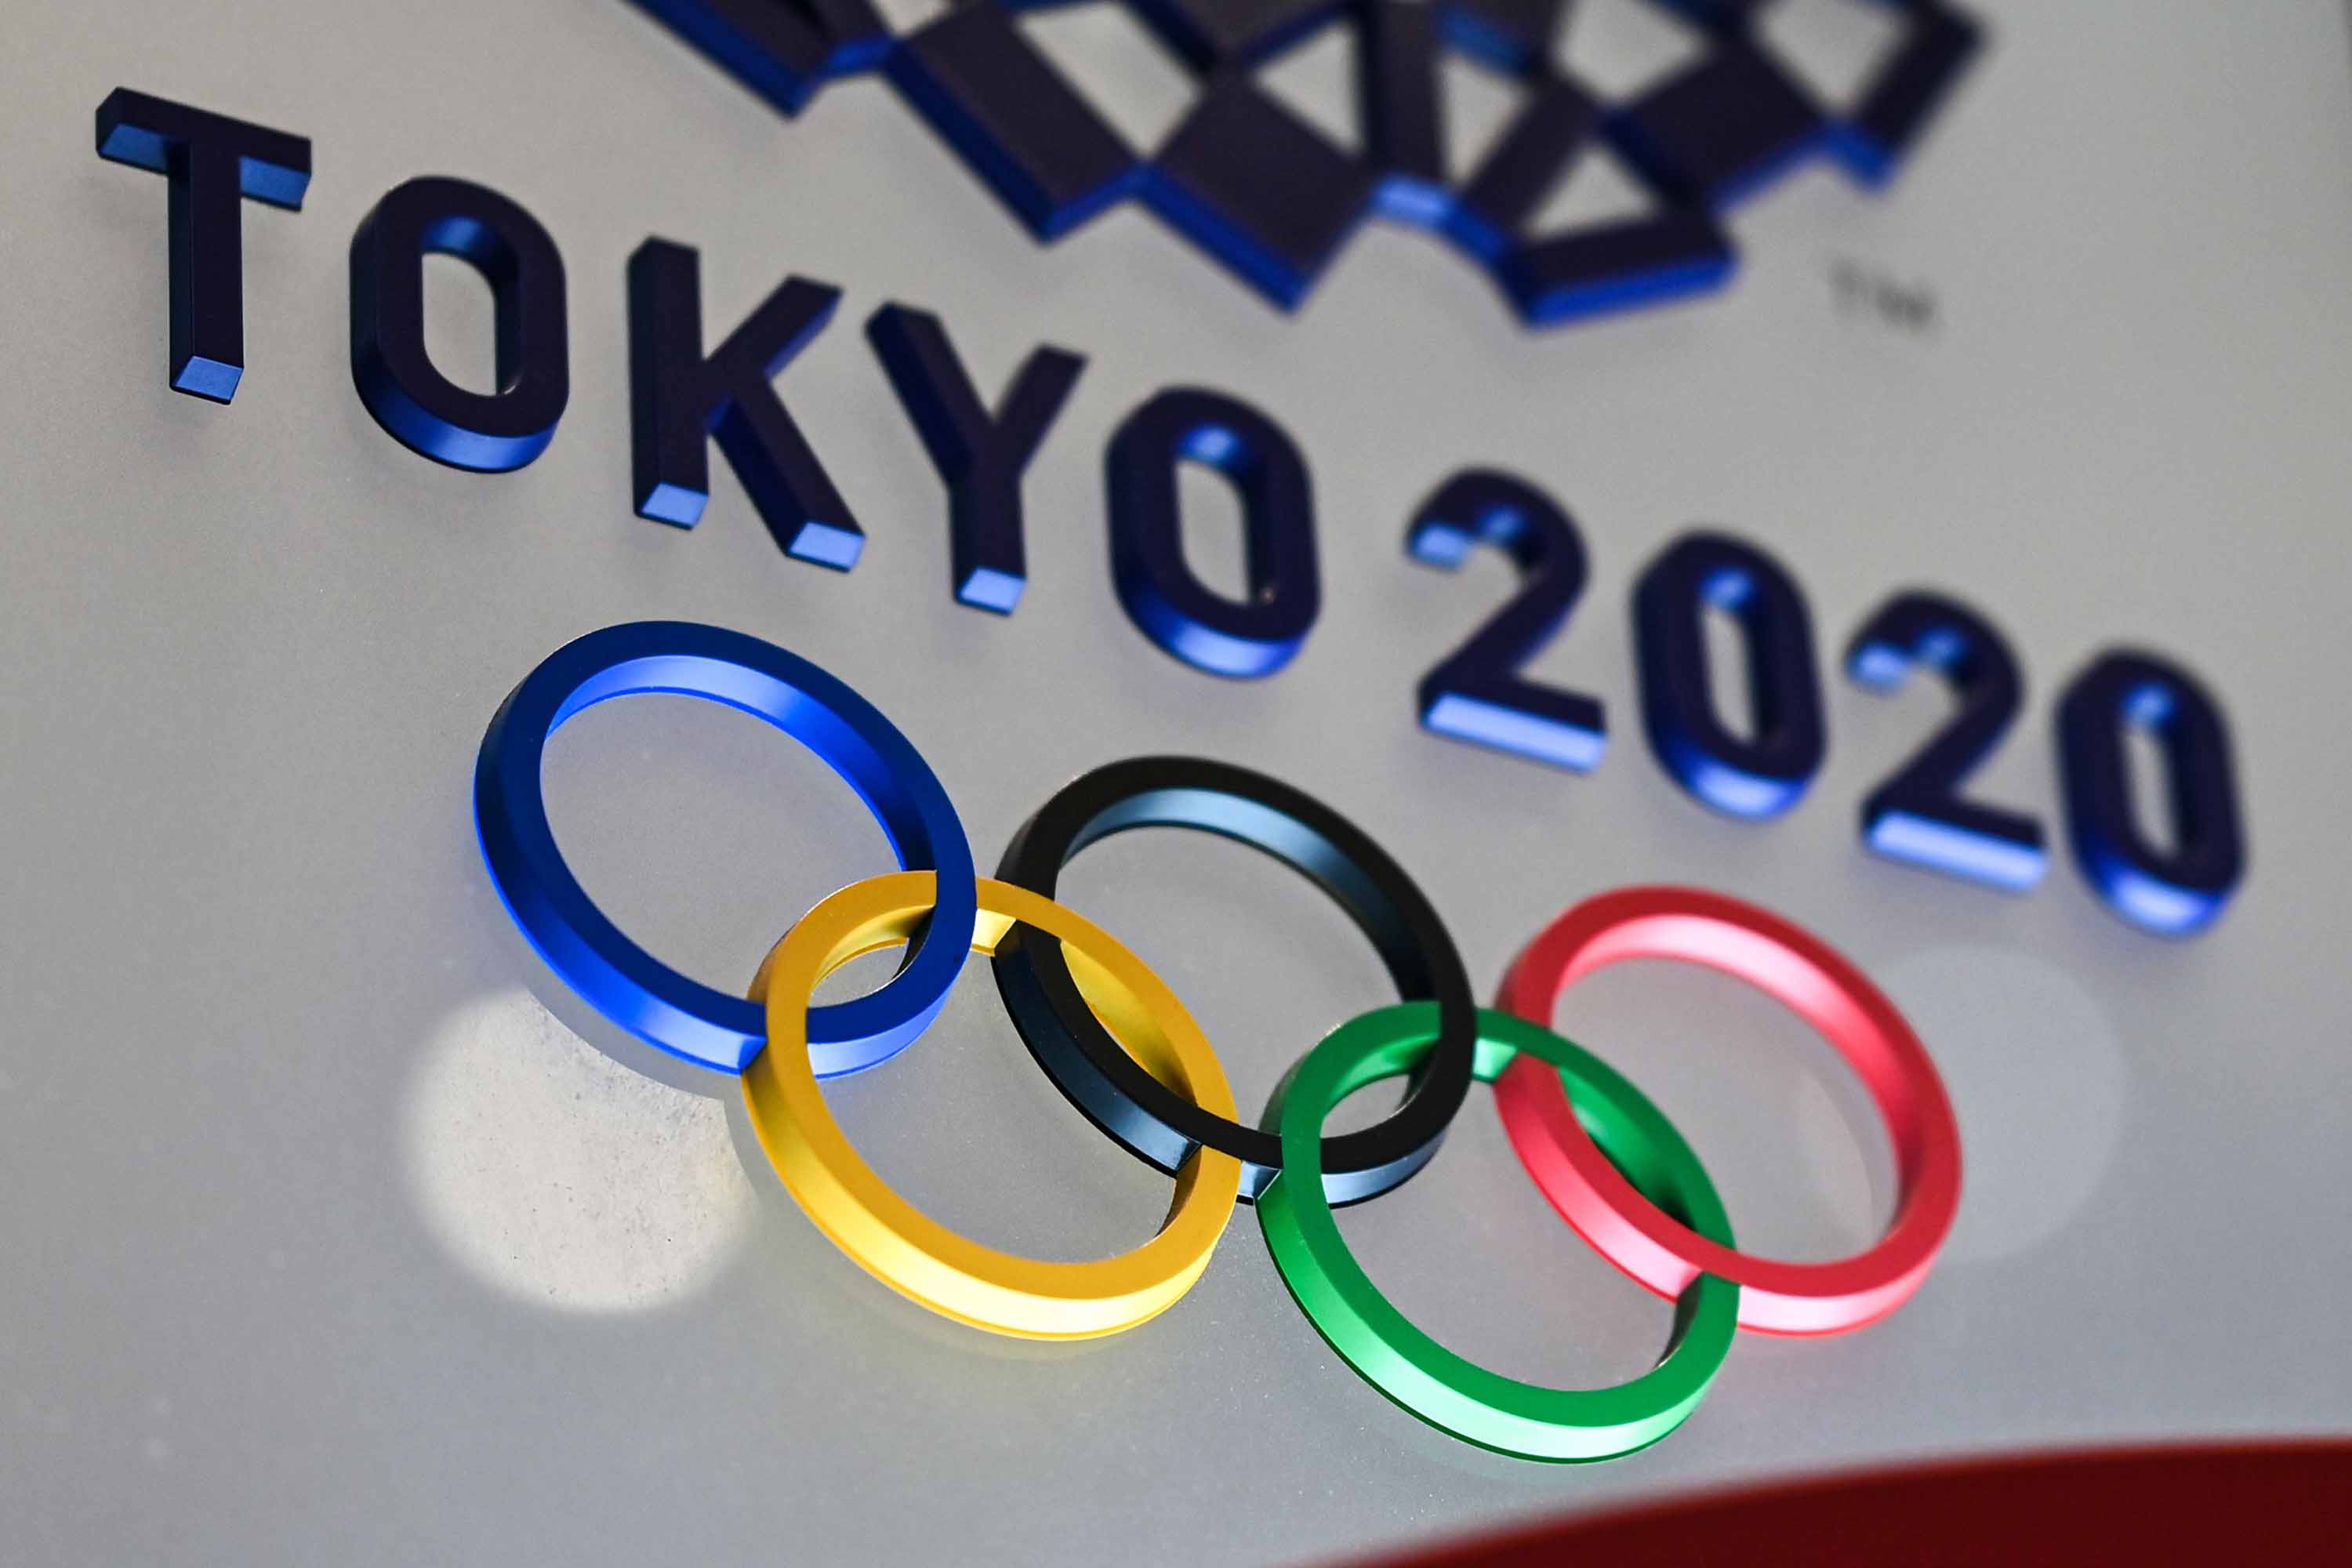 The Tokyo 2020 Olympic Games logo is seen in Tokyo on January 28.